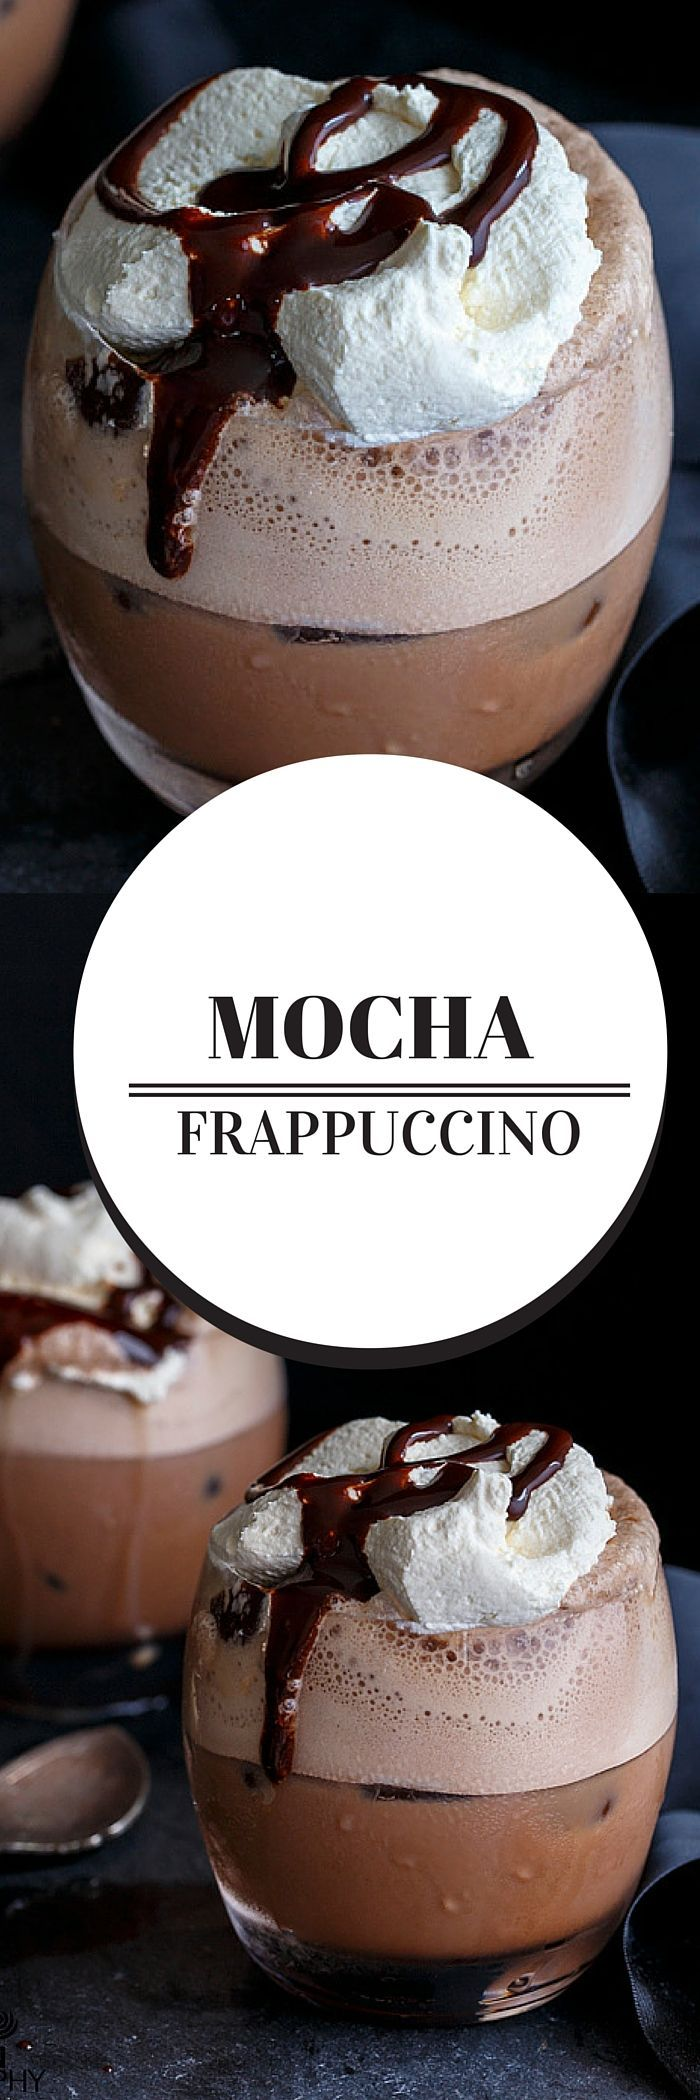 Homemade Mocha Frappuccino is nearly the replica of the trademark drink Frappuccino, available at the popular cafe chain – Starbucks. You could save a few pounds and time by making them at home, instead of visiting the Coffee shop, every visit to the HighStreet.